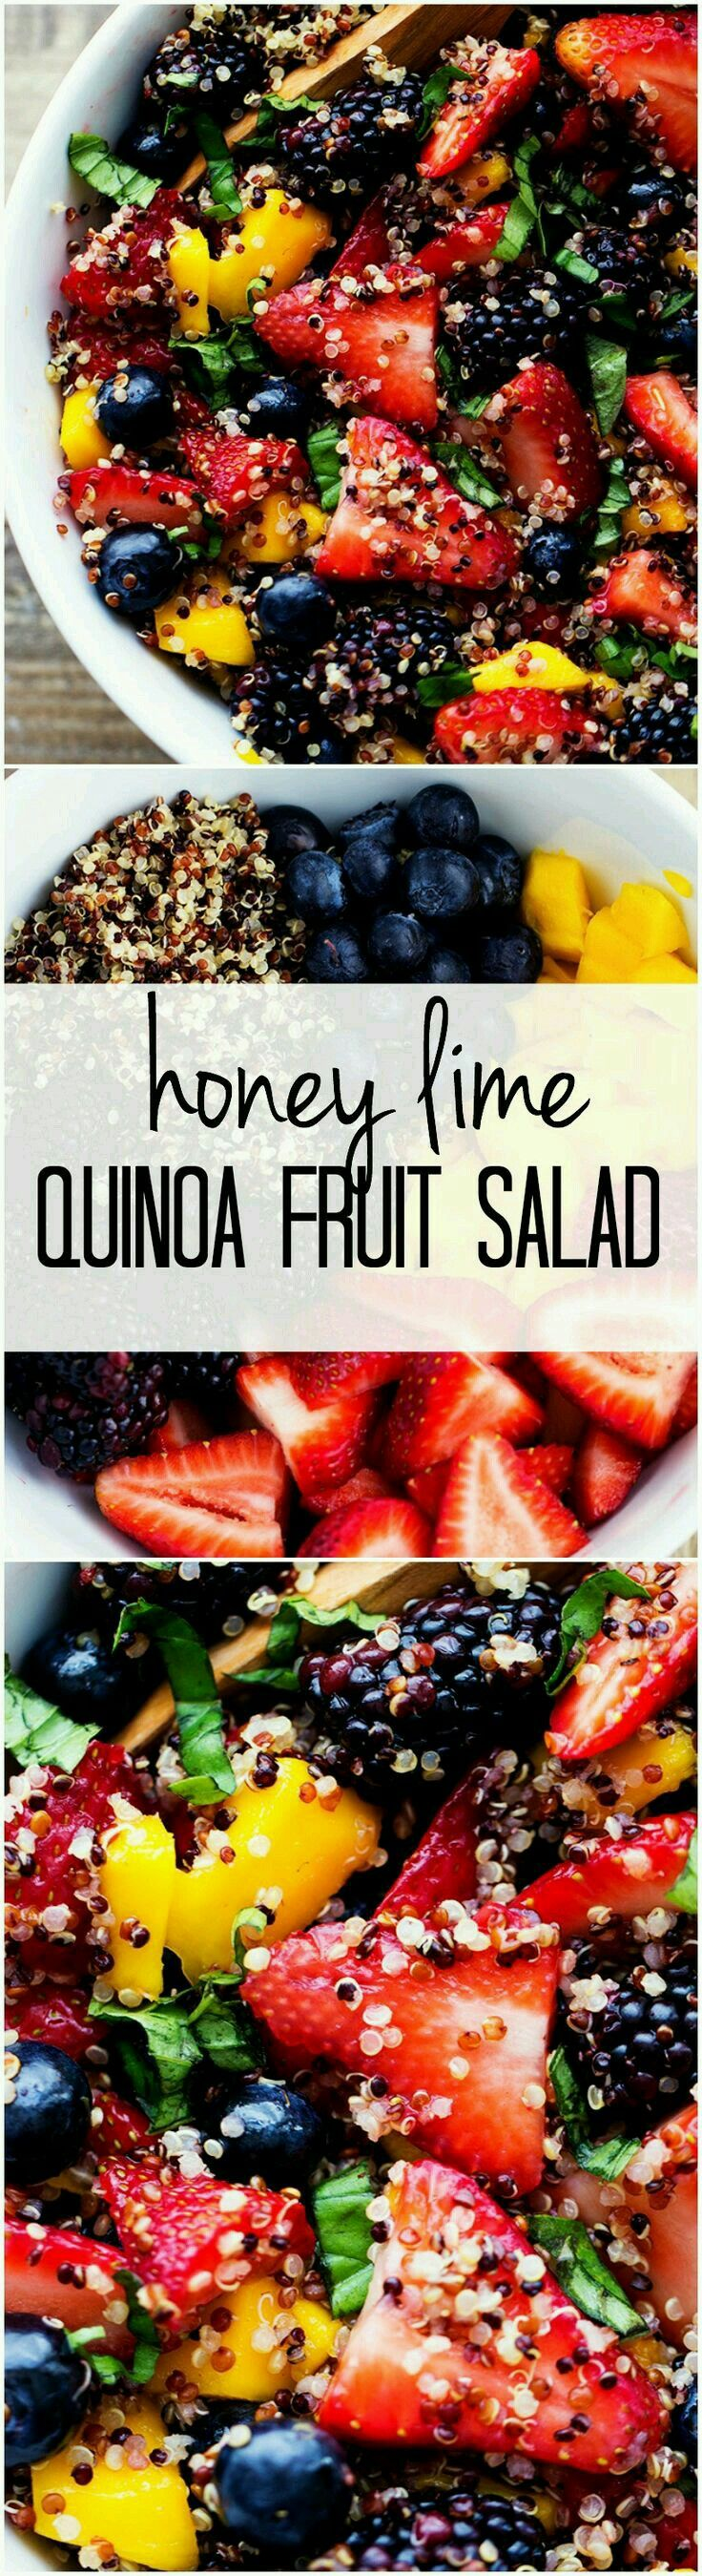 Light, Refreshing, Honey Lime Quinoa Fruit Salad